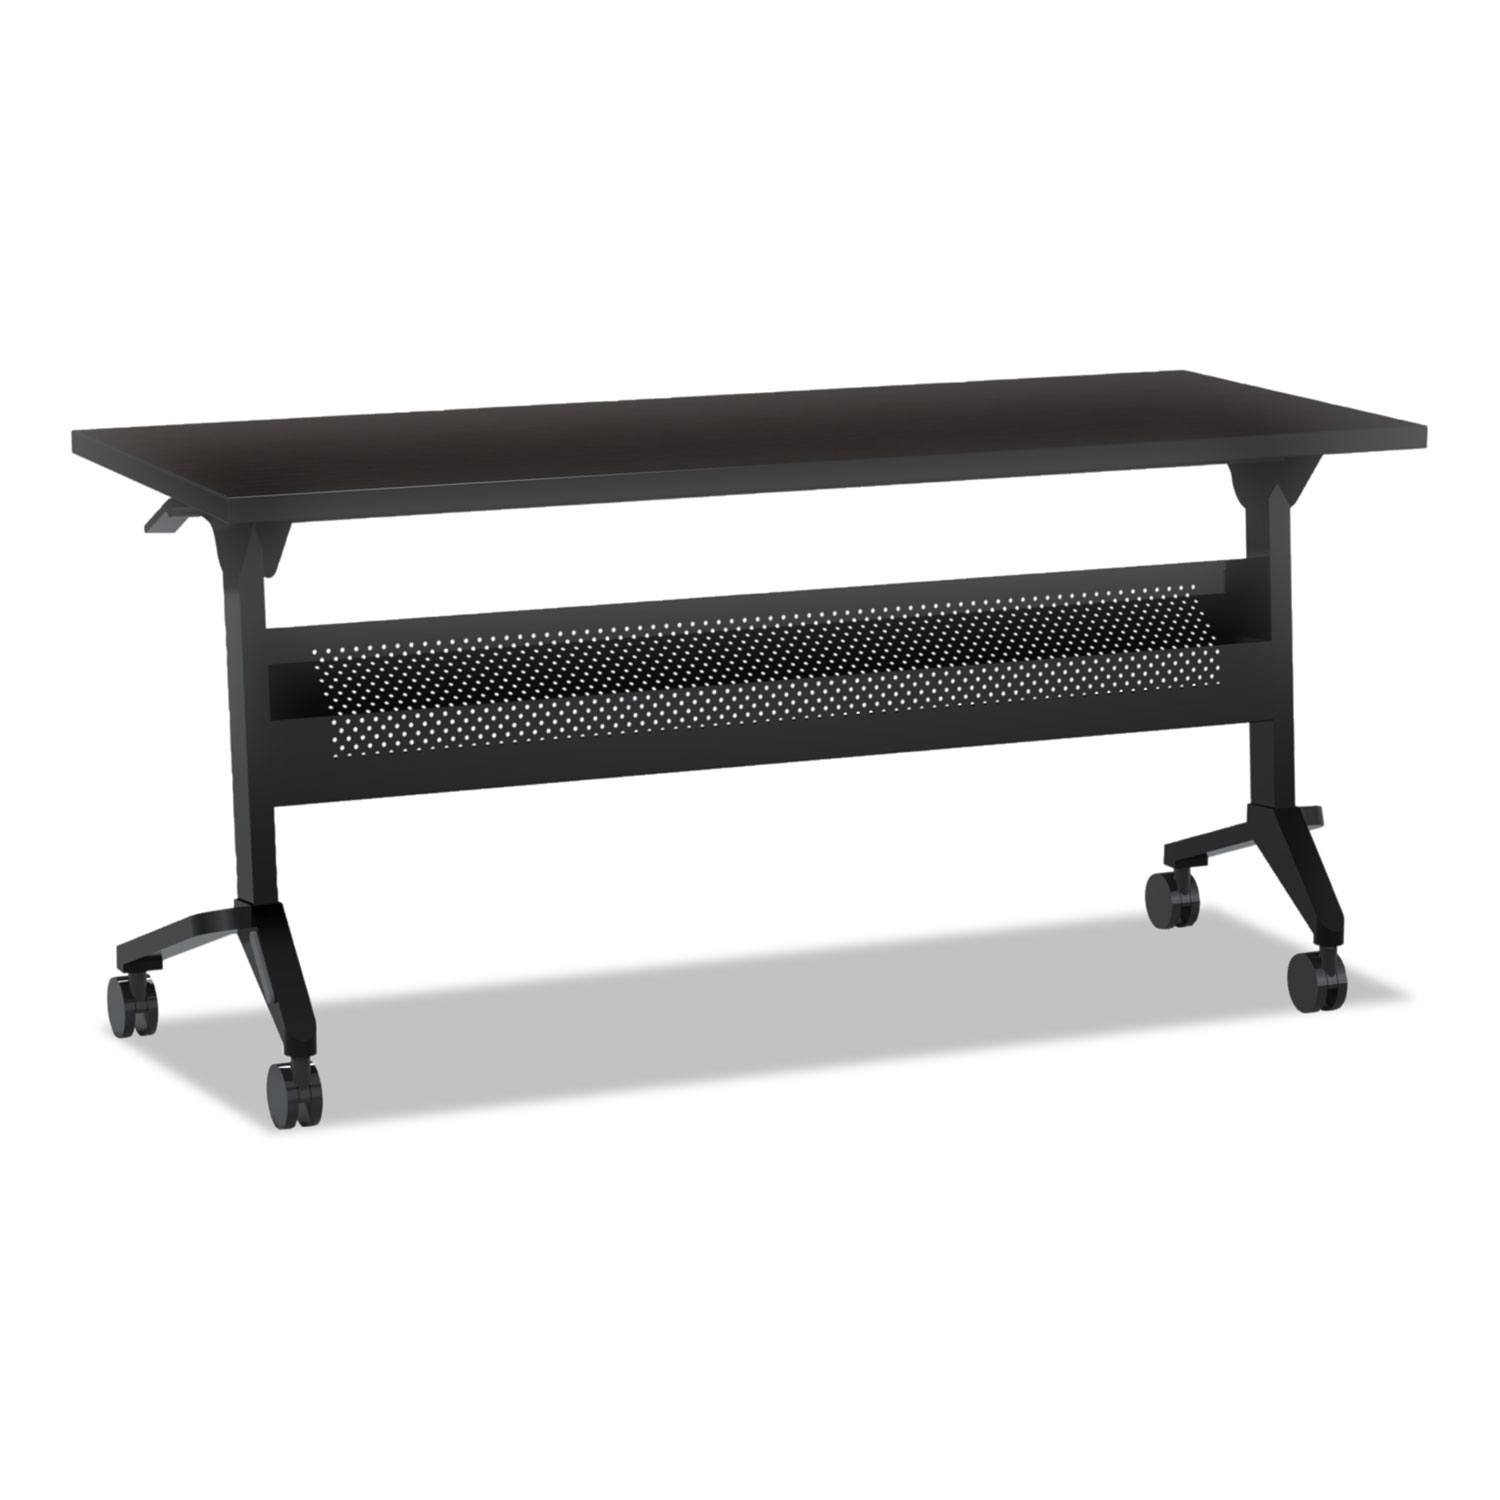 Flip-n-Go Table Top, 60w x 24d, Mocha